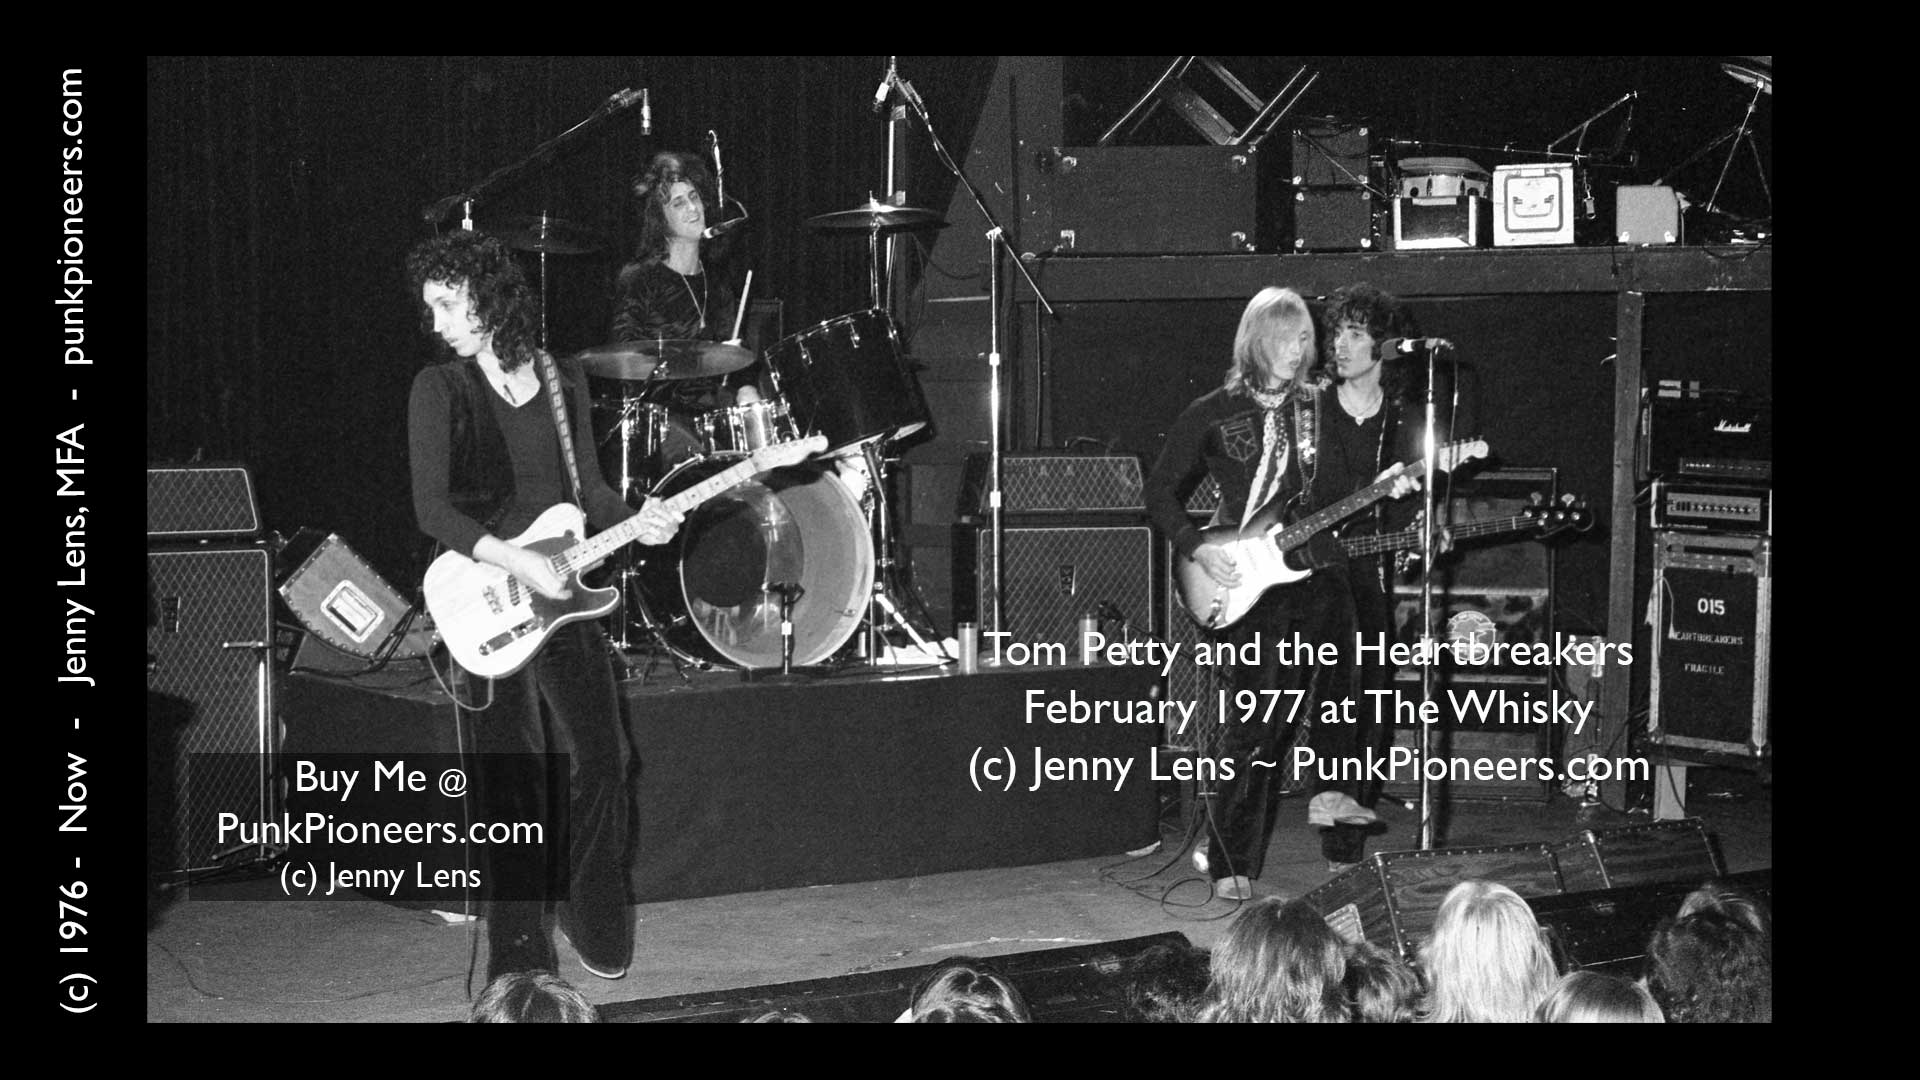 Tom Petty And Heartbreakers The Whisky February 1977 1 1g